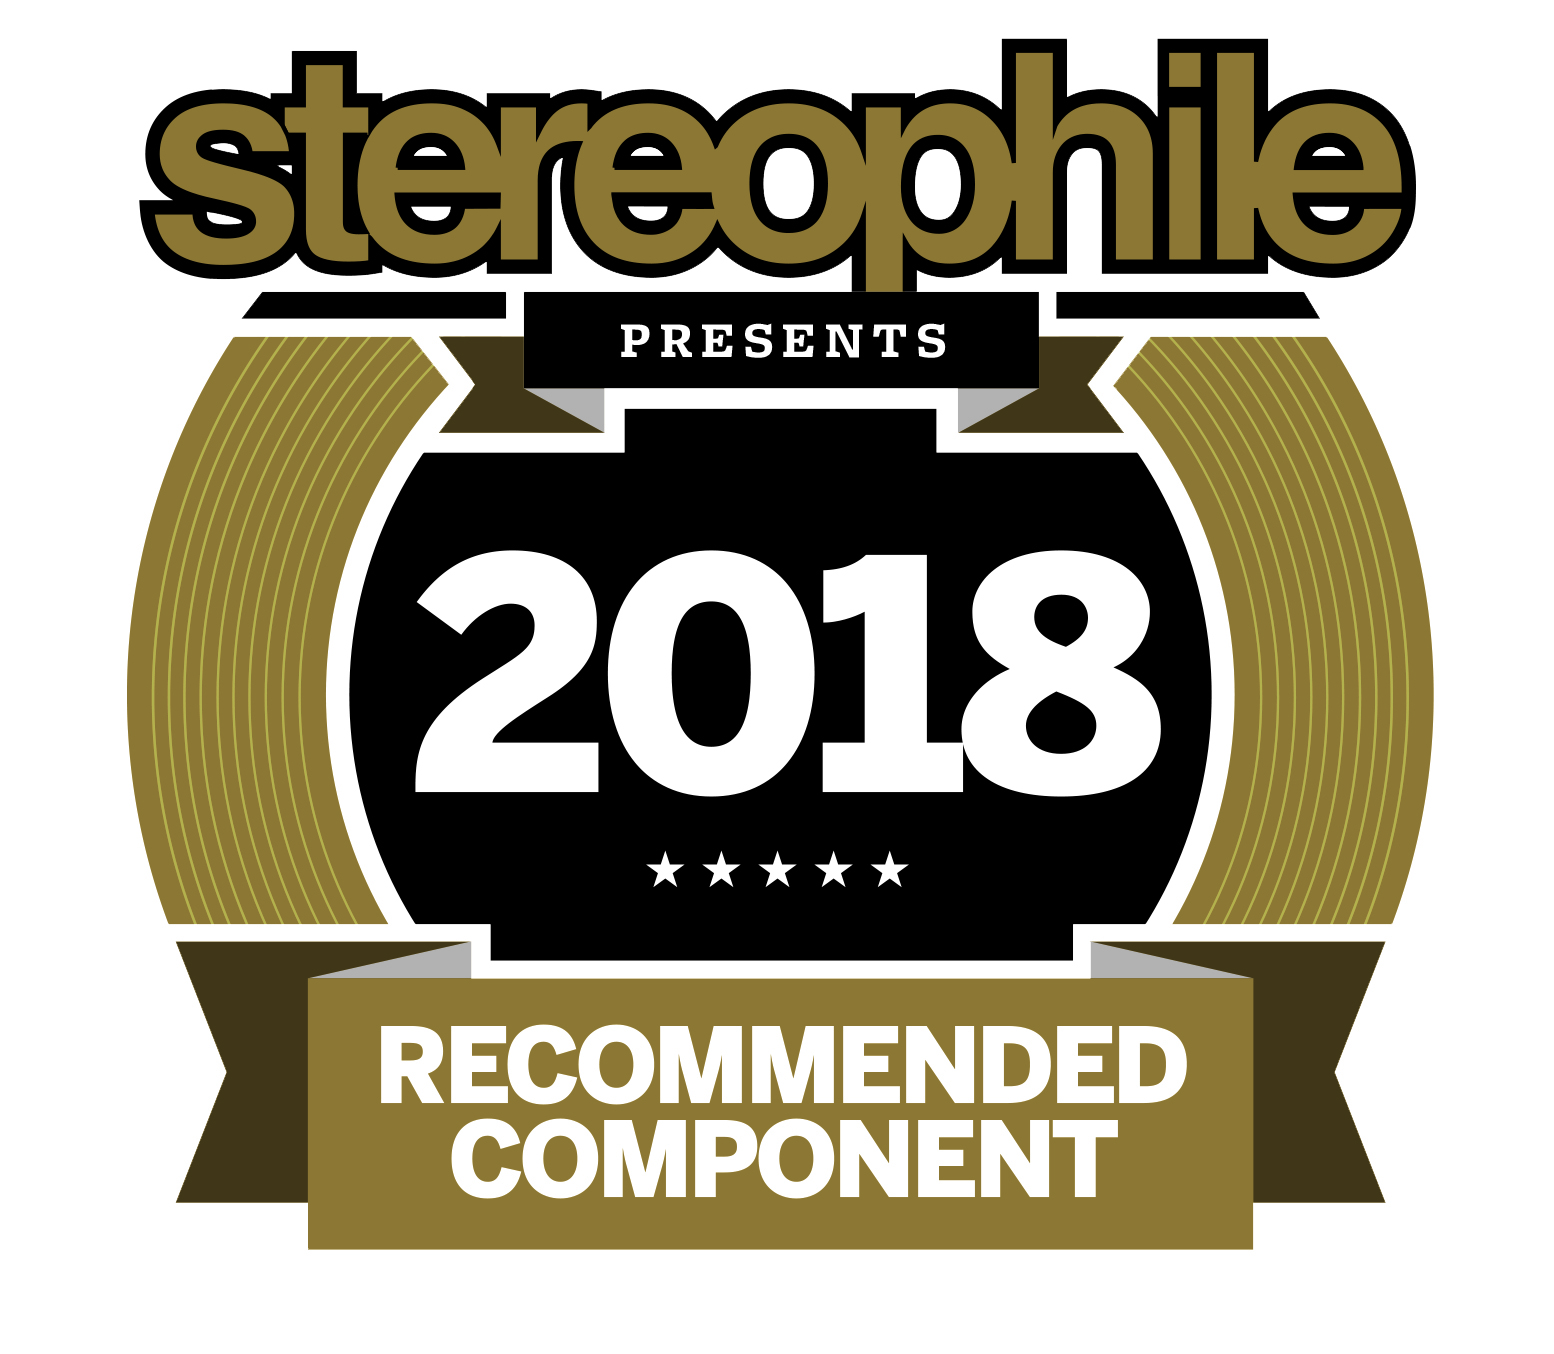 Stereophile Recommended Component - Triode Wire Labs